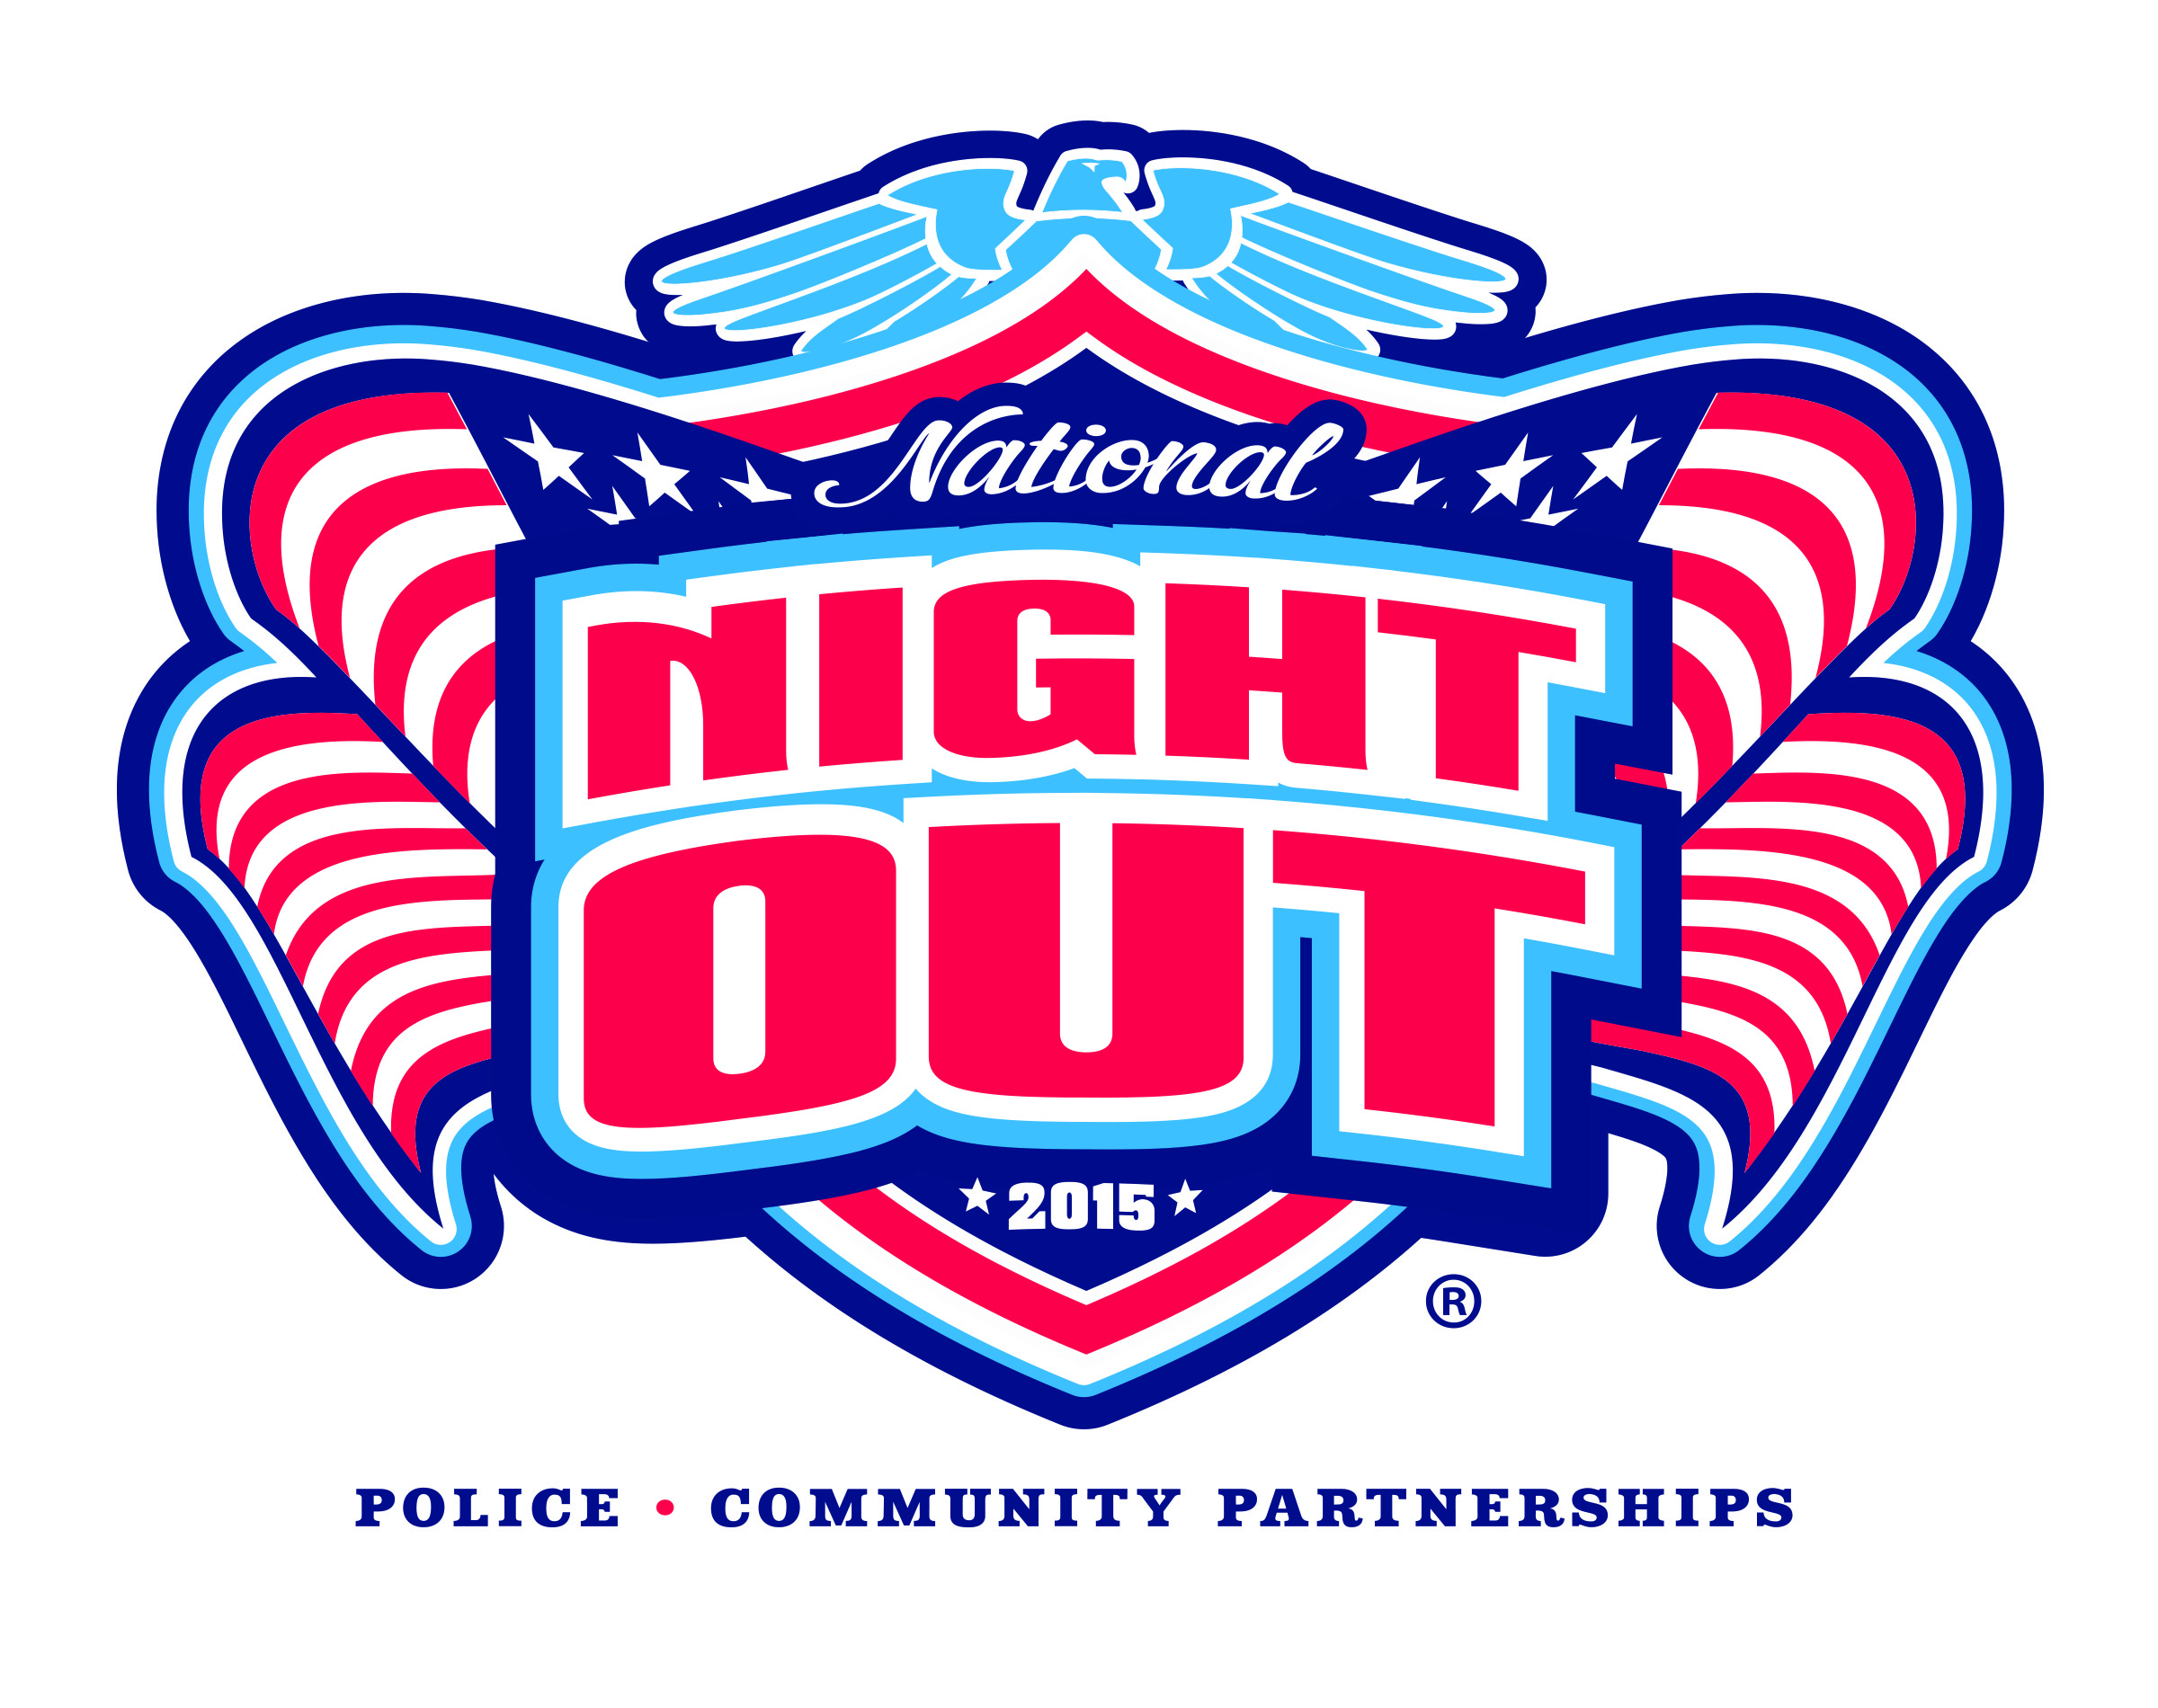 Icon of National Night Out 2015 Event